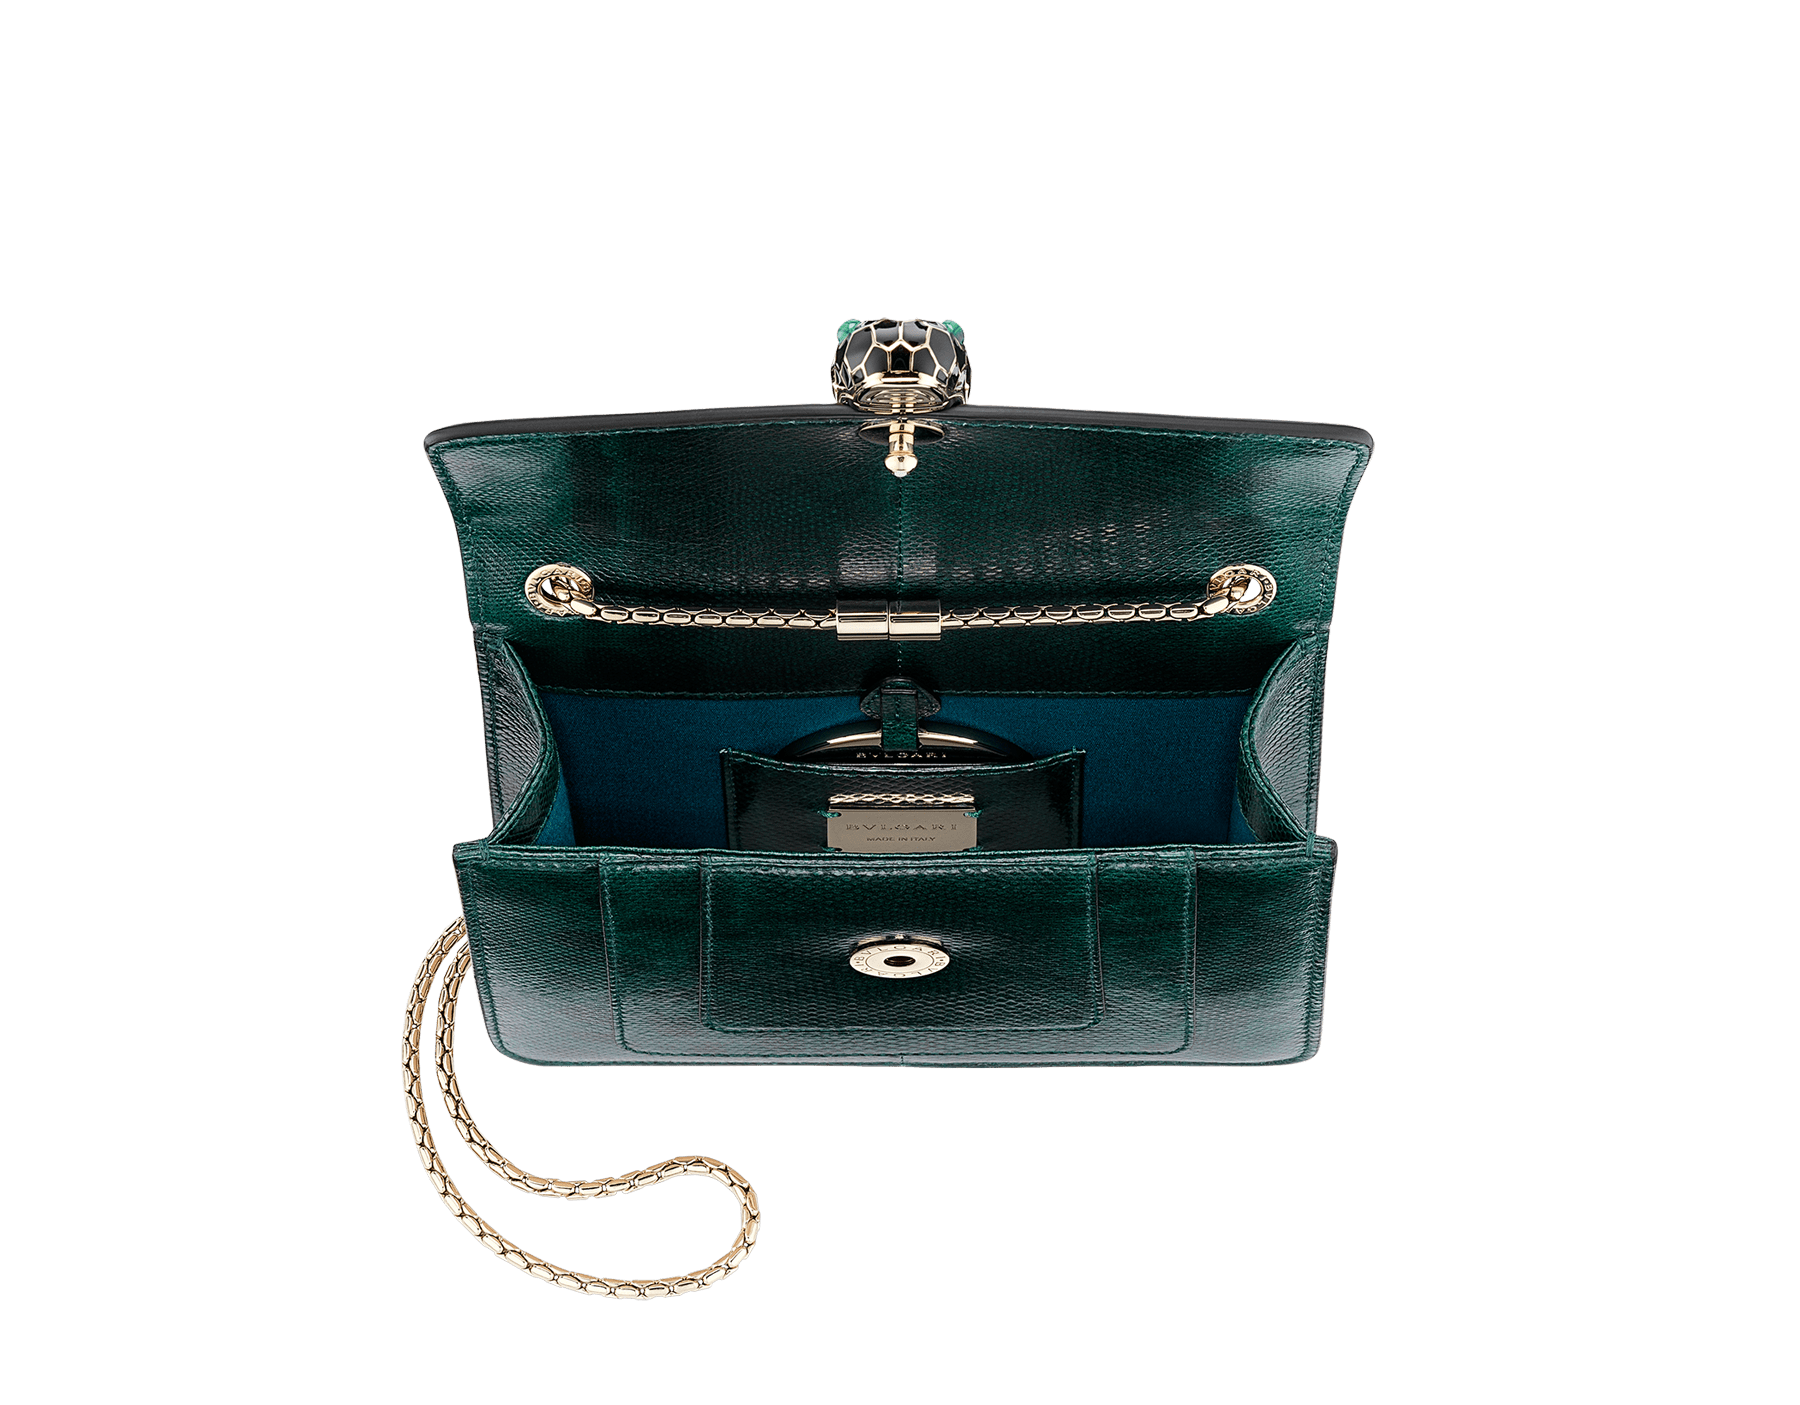 """""""Serpenti Forever"""" crossbody bag in shiny forest emerald karung skin. Iconic snakehead closure in light gold plated brass enriched with black and white enamel and green malachite eyes. 287357 image 3"""